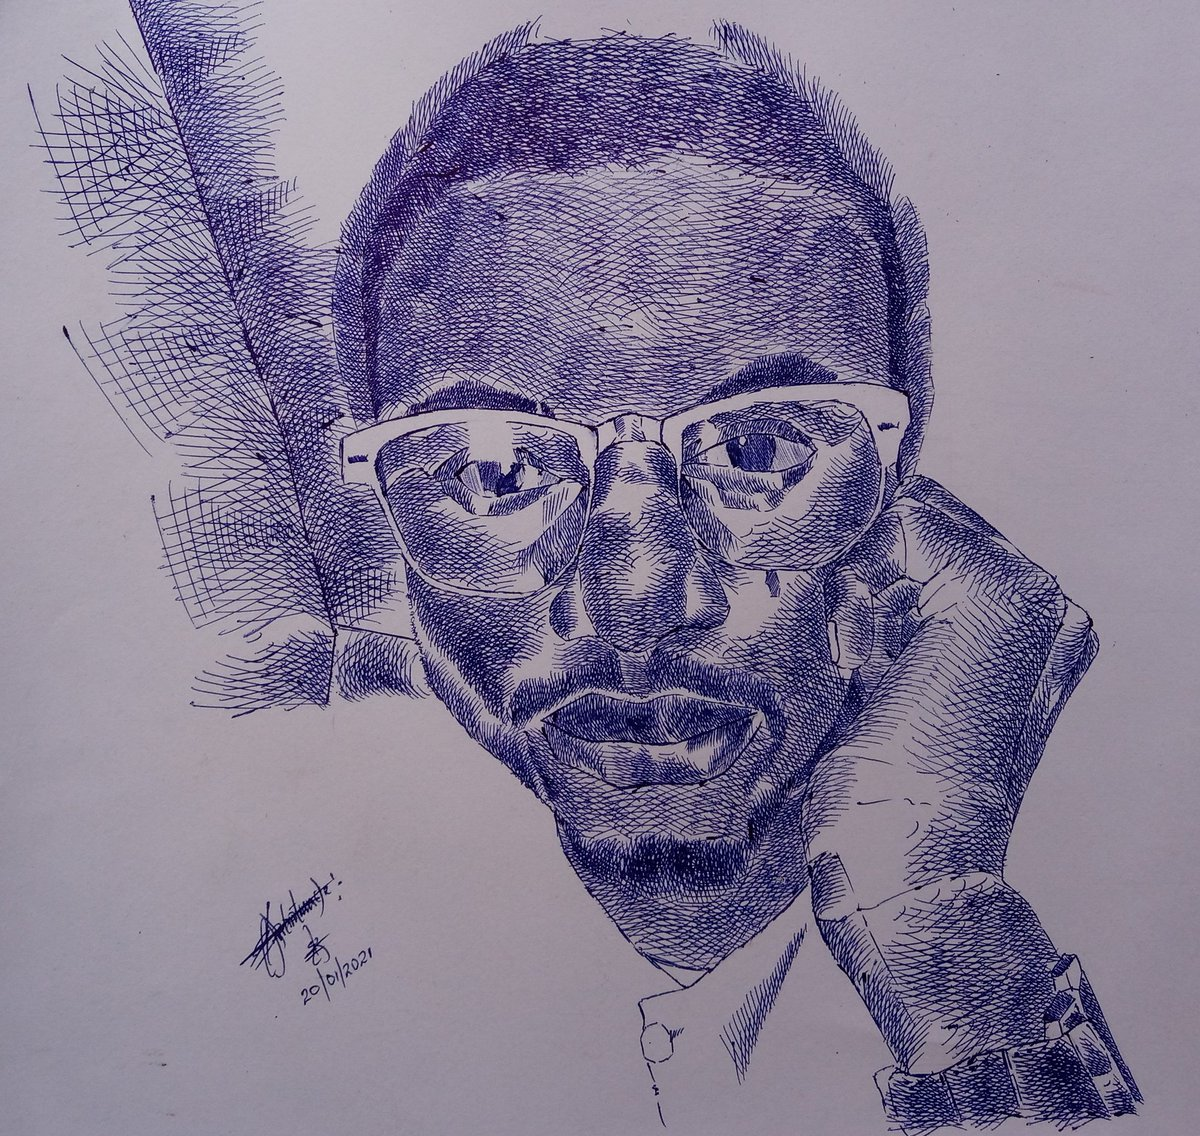 @nuel_arts  Your AVI spoke to my pen yesterday evening, immediately she depict your picture. Moreover, that's strange 😆😆. Thanks to you PEN, I really appreciate you🙏🏾🙏🏾✍🏽✍🏽✍🏻 #portrait #penstroke #crosshatching @Mirungi_Arts #portraiture #biro #Art #drawing #crosshatch